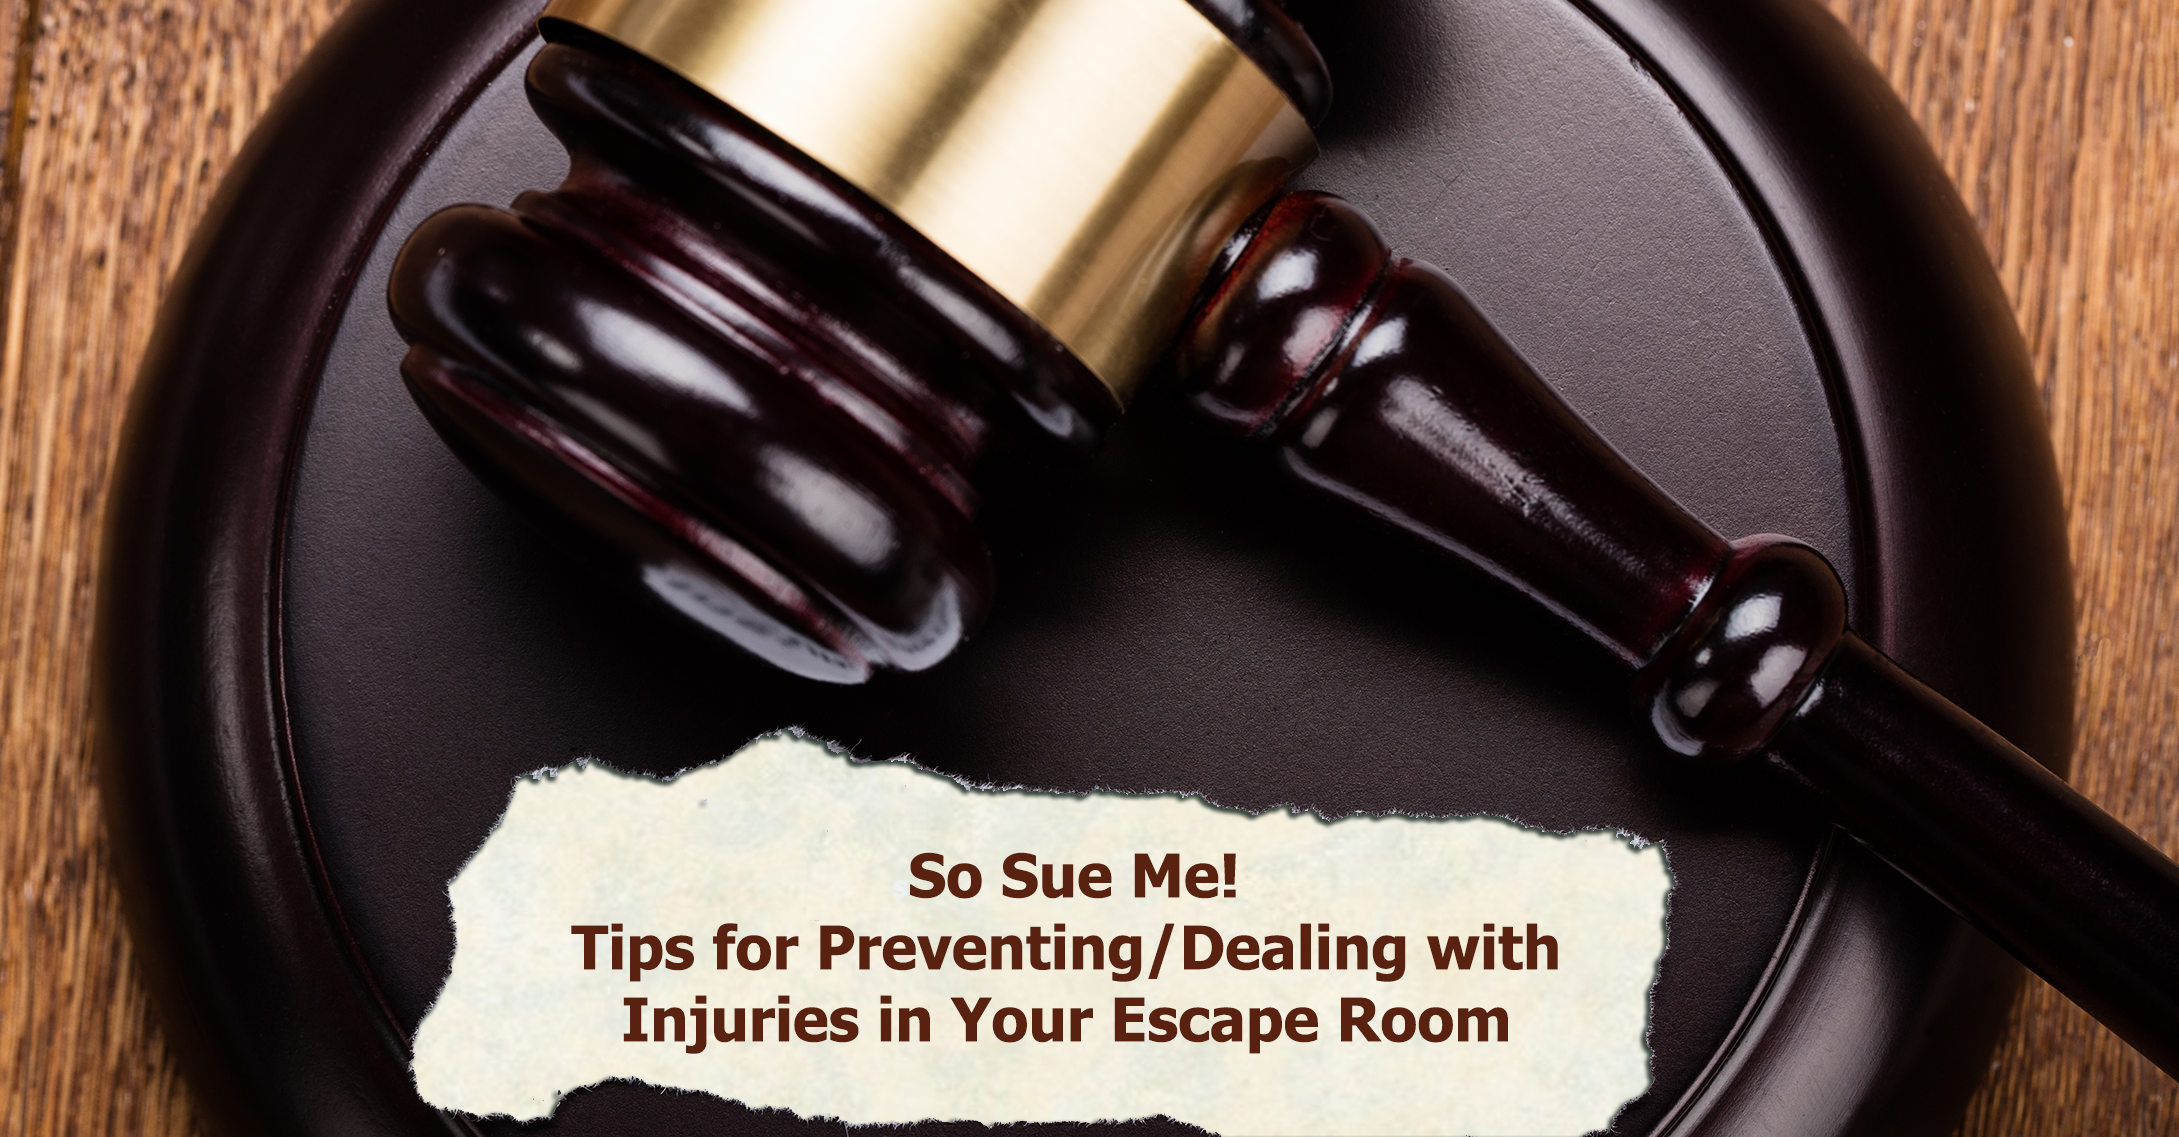 How to Open an Escape Room Business: So Sue Me! Tips for Preventing and Dealing with Injuries in Your Escape Room